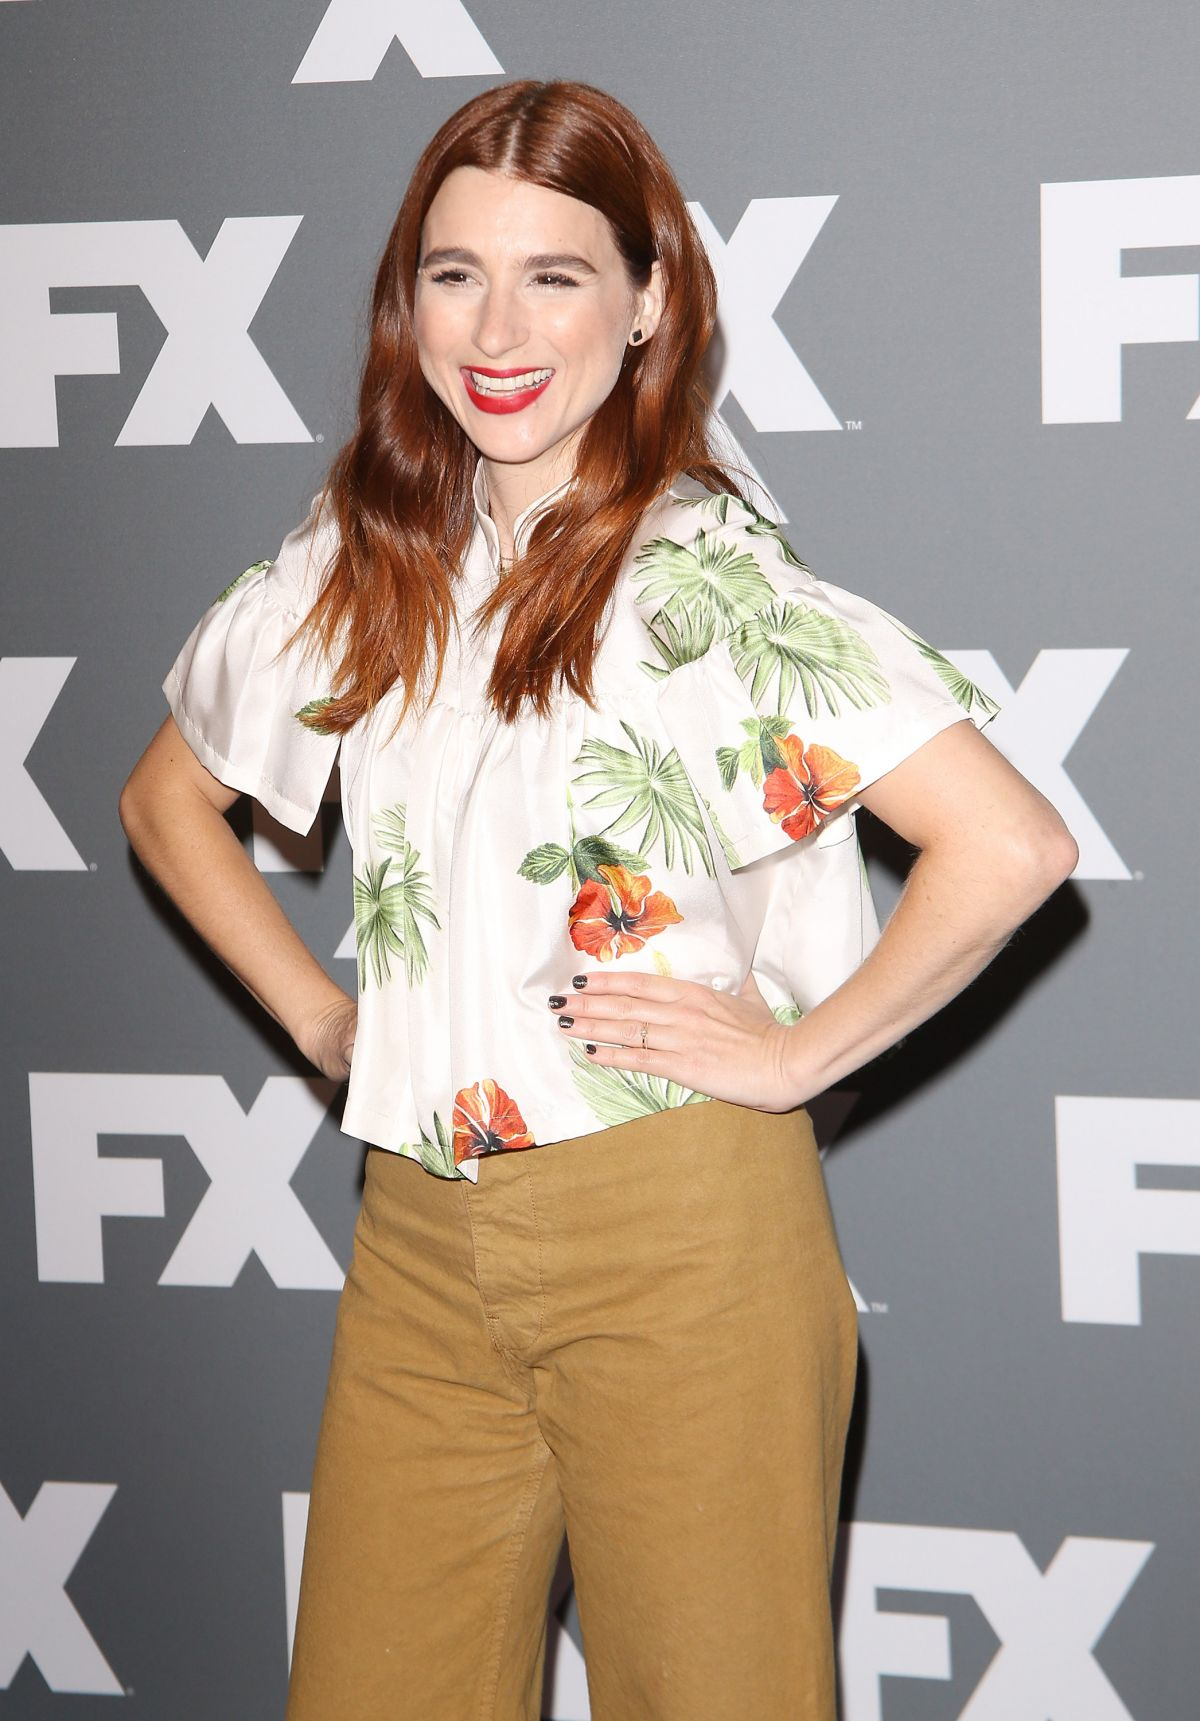 AYA CASH at FX TCA Summer Tour in Los Angeles 08/09/2017